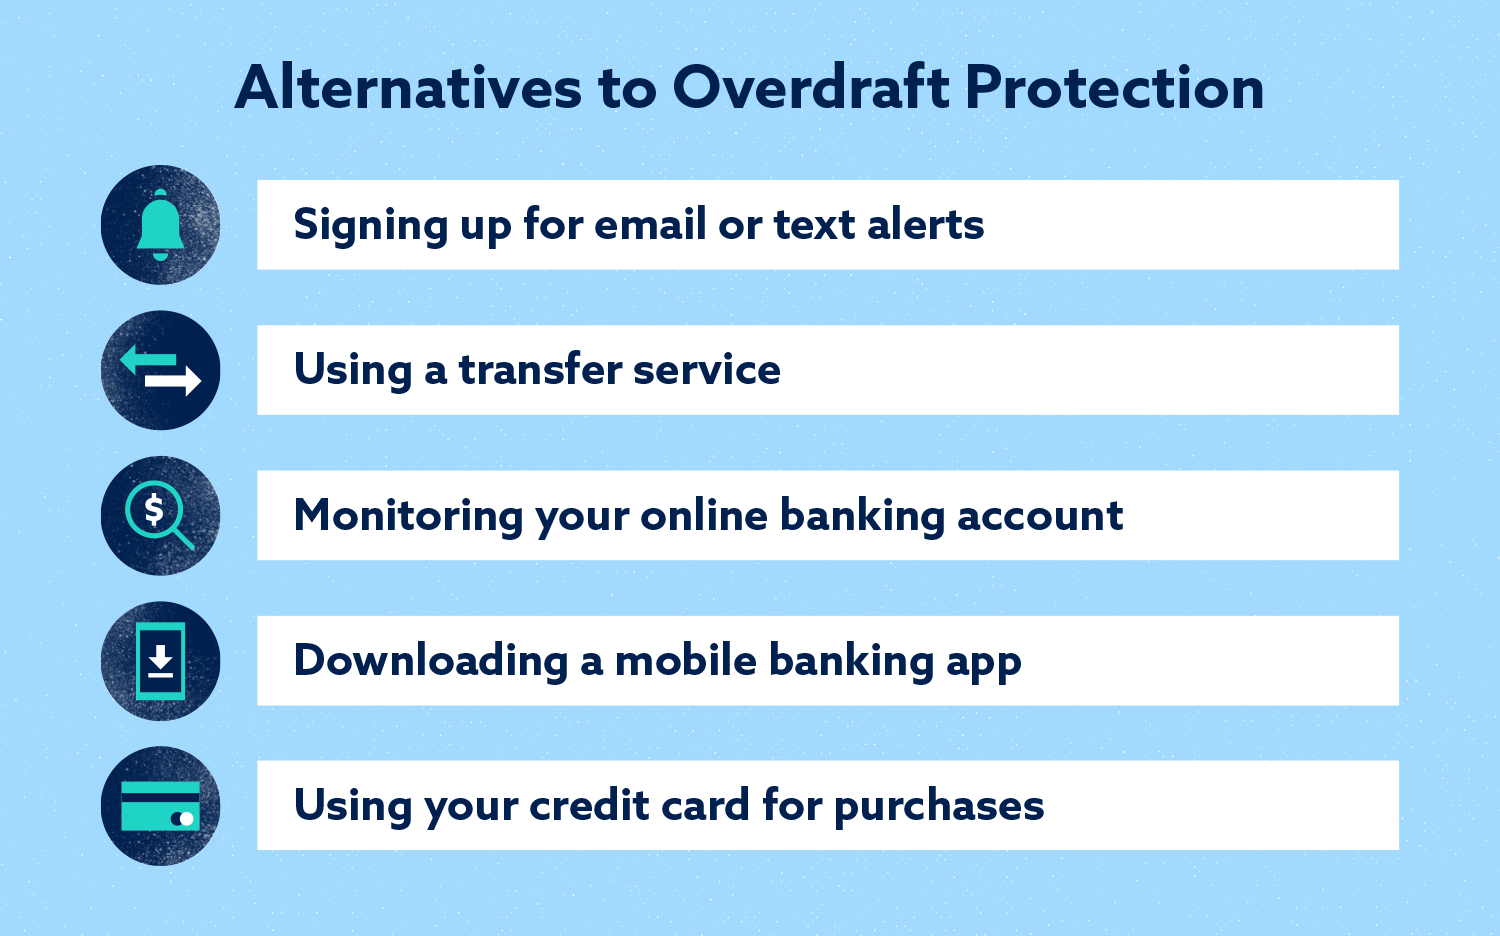 alternatives to overdraft protection